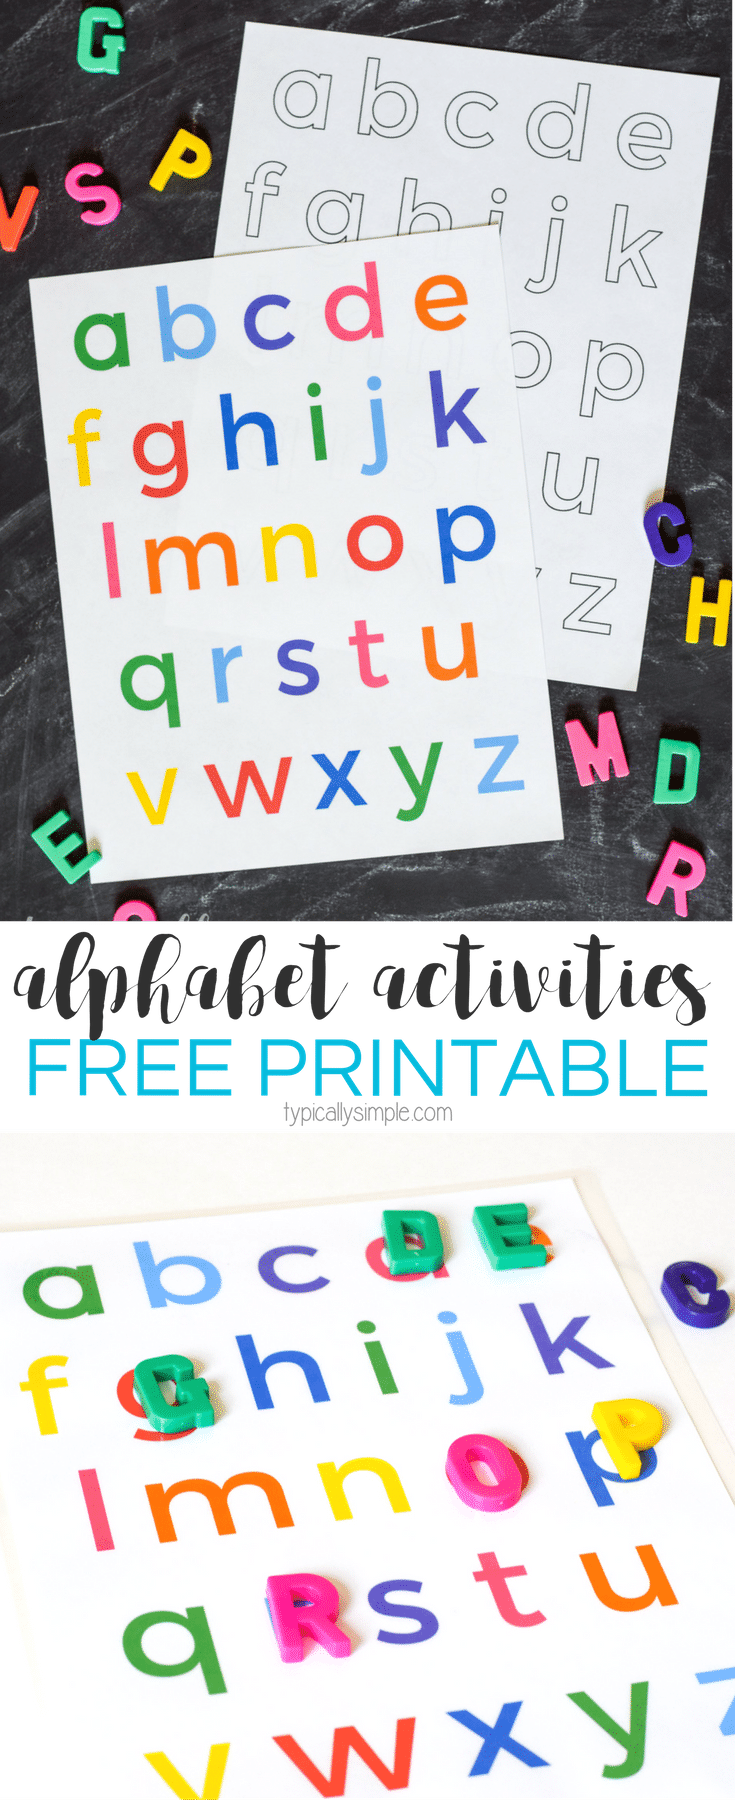 photo relating to Free Printable Lower Case Letters known as Alphabet Actions: Lowercase Letters Printable - Normally